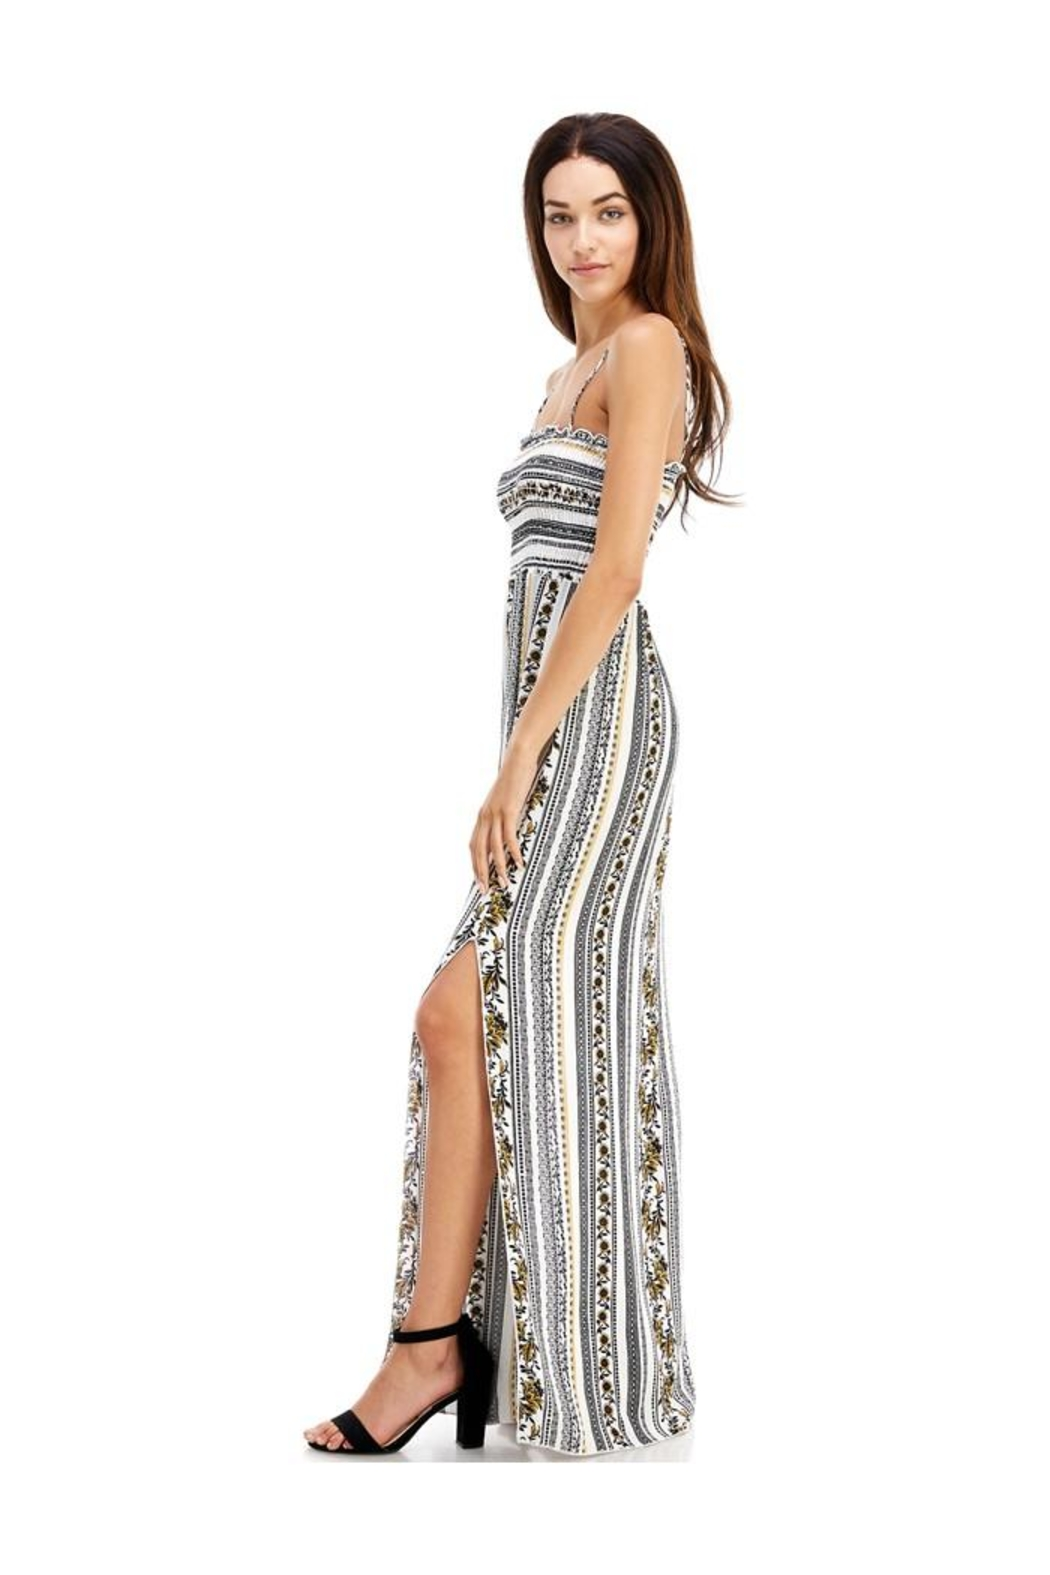 Miley and Molly Ethnic Linear Print Smocking Tube Top Maxi - Front Full Image